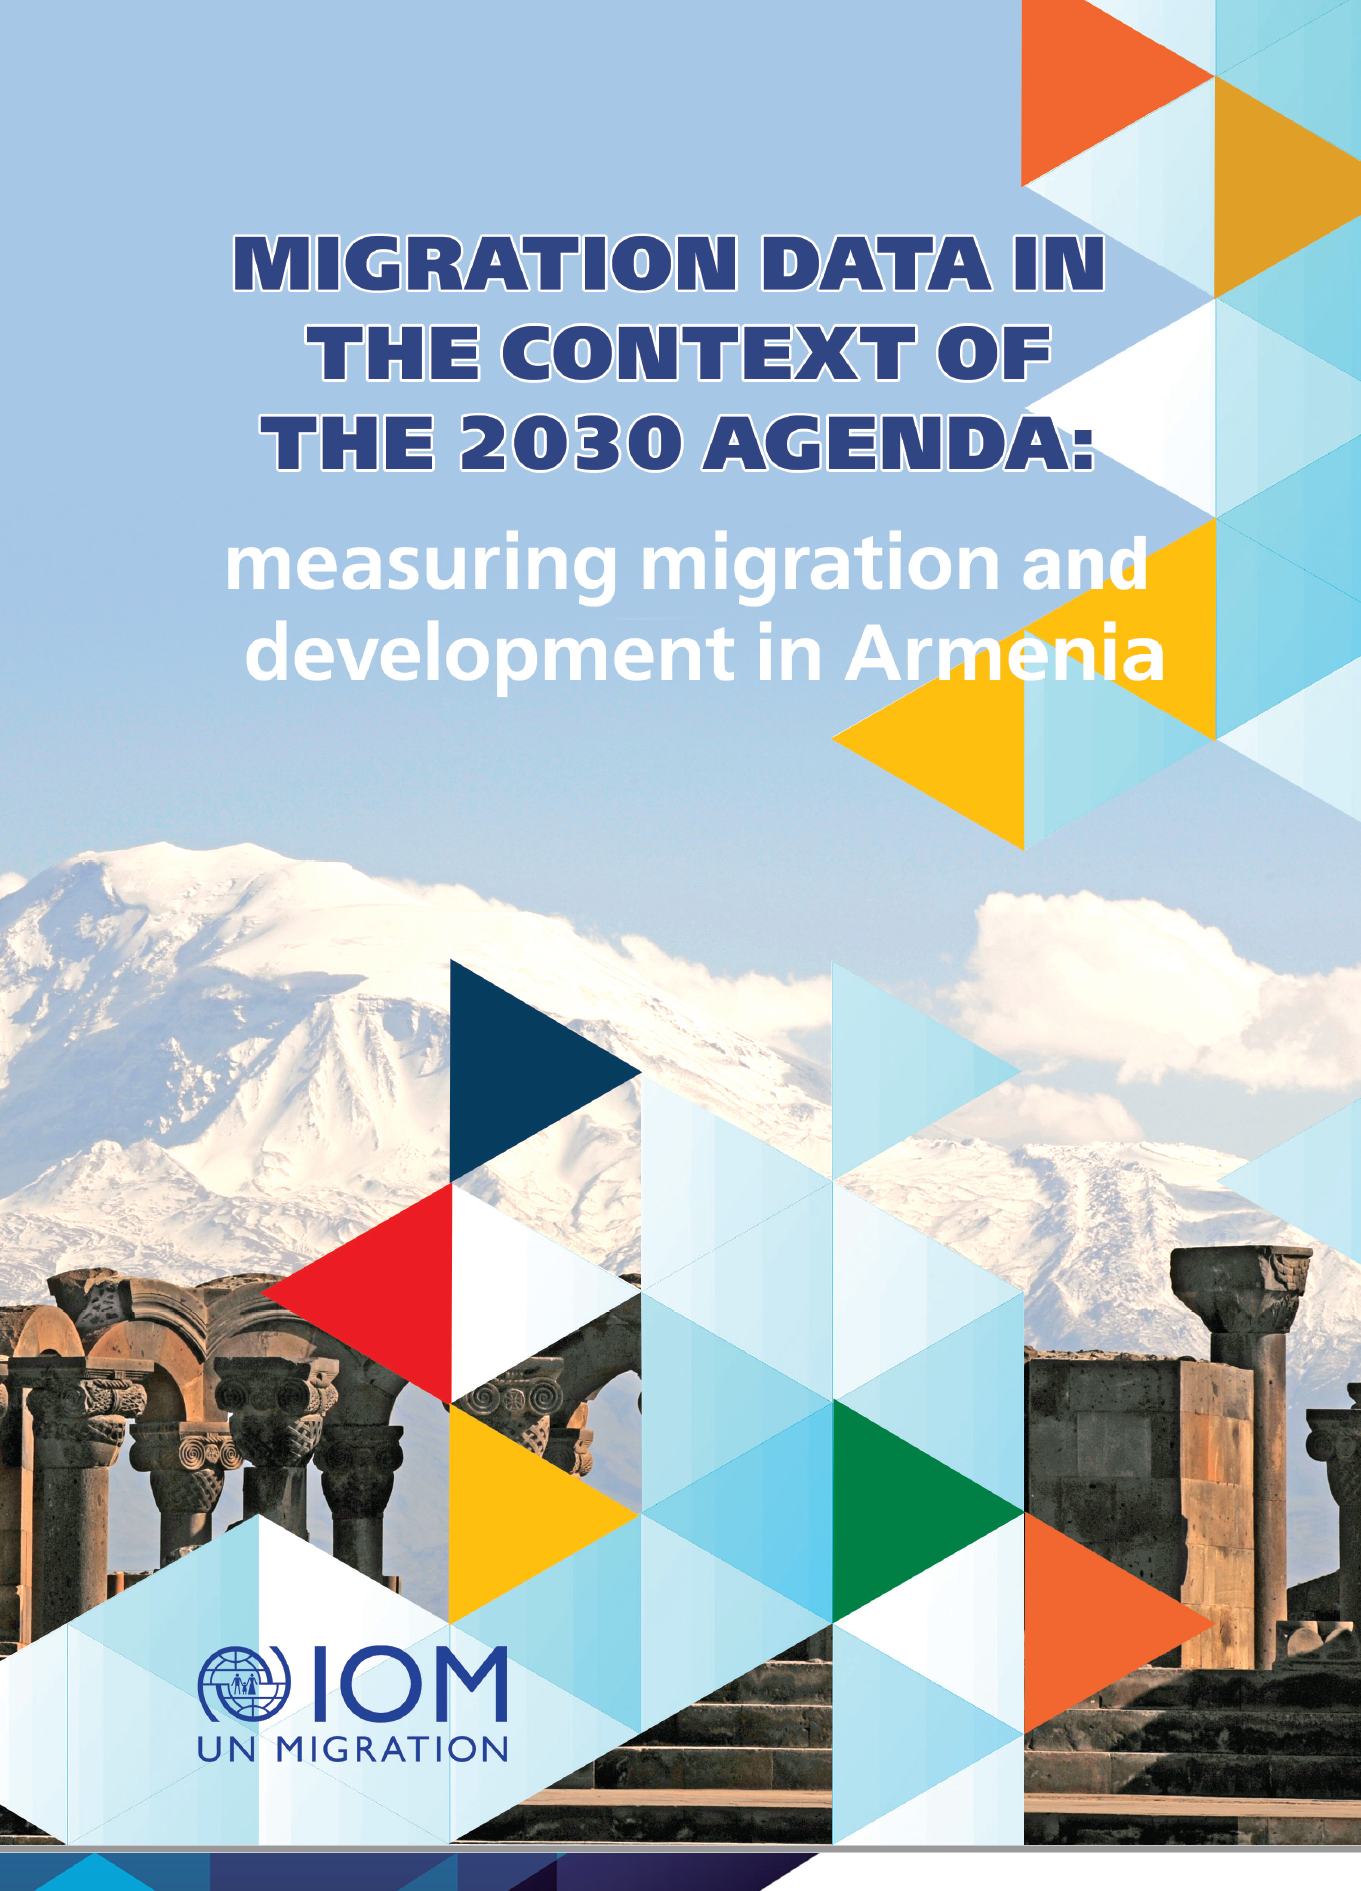 Migration data in the context of the 2030 agenda. measuring migration and development in Armenia cover.